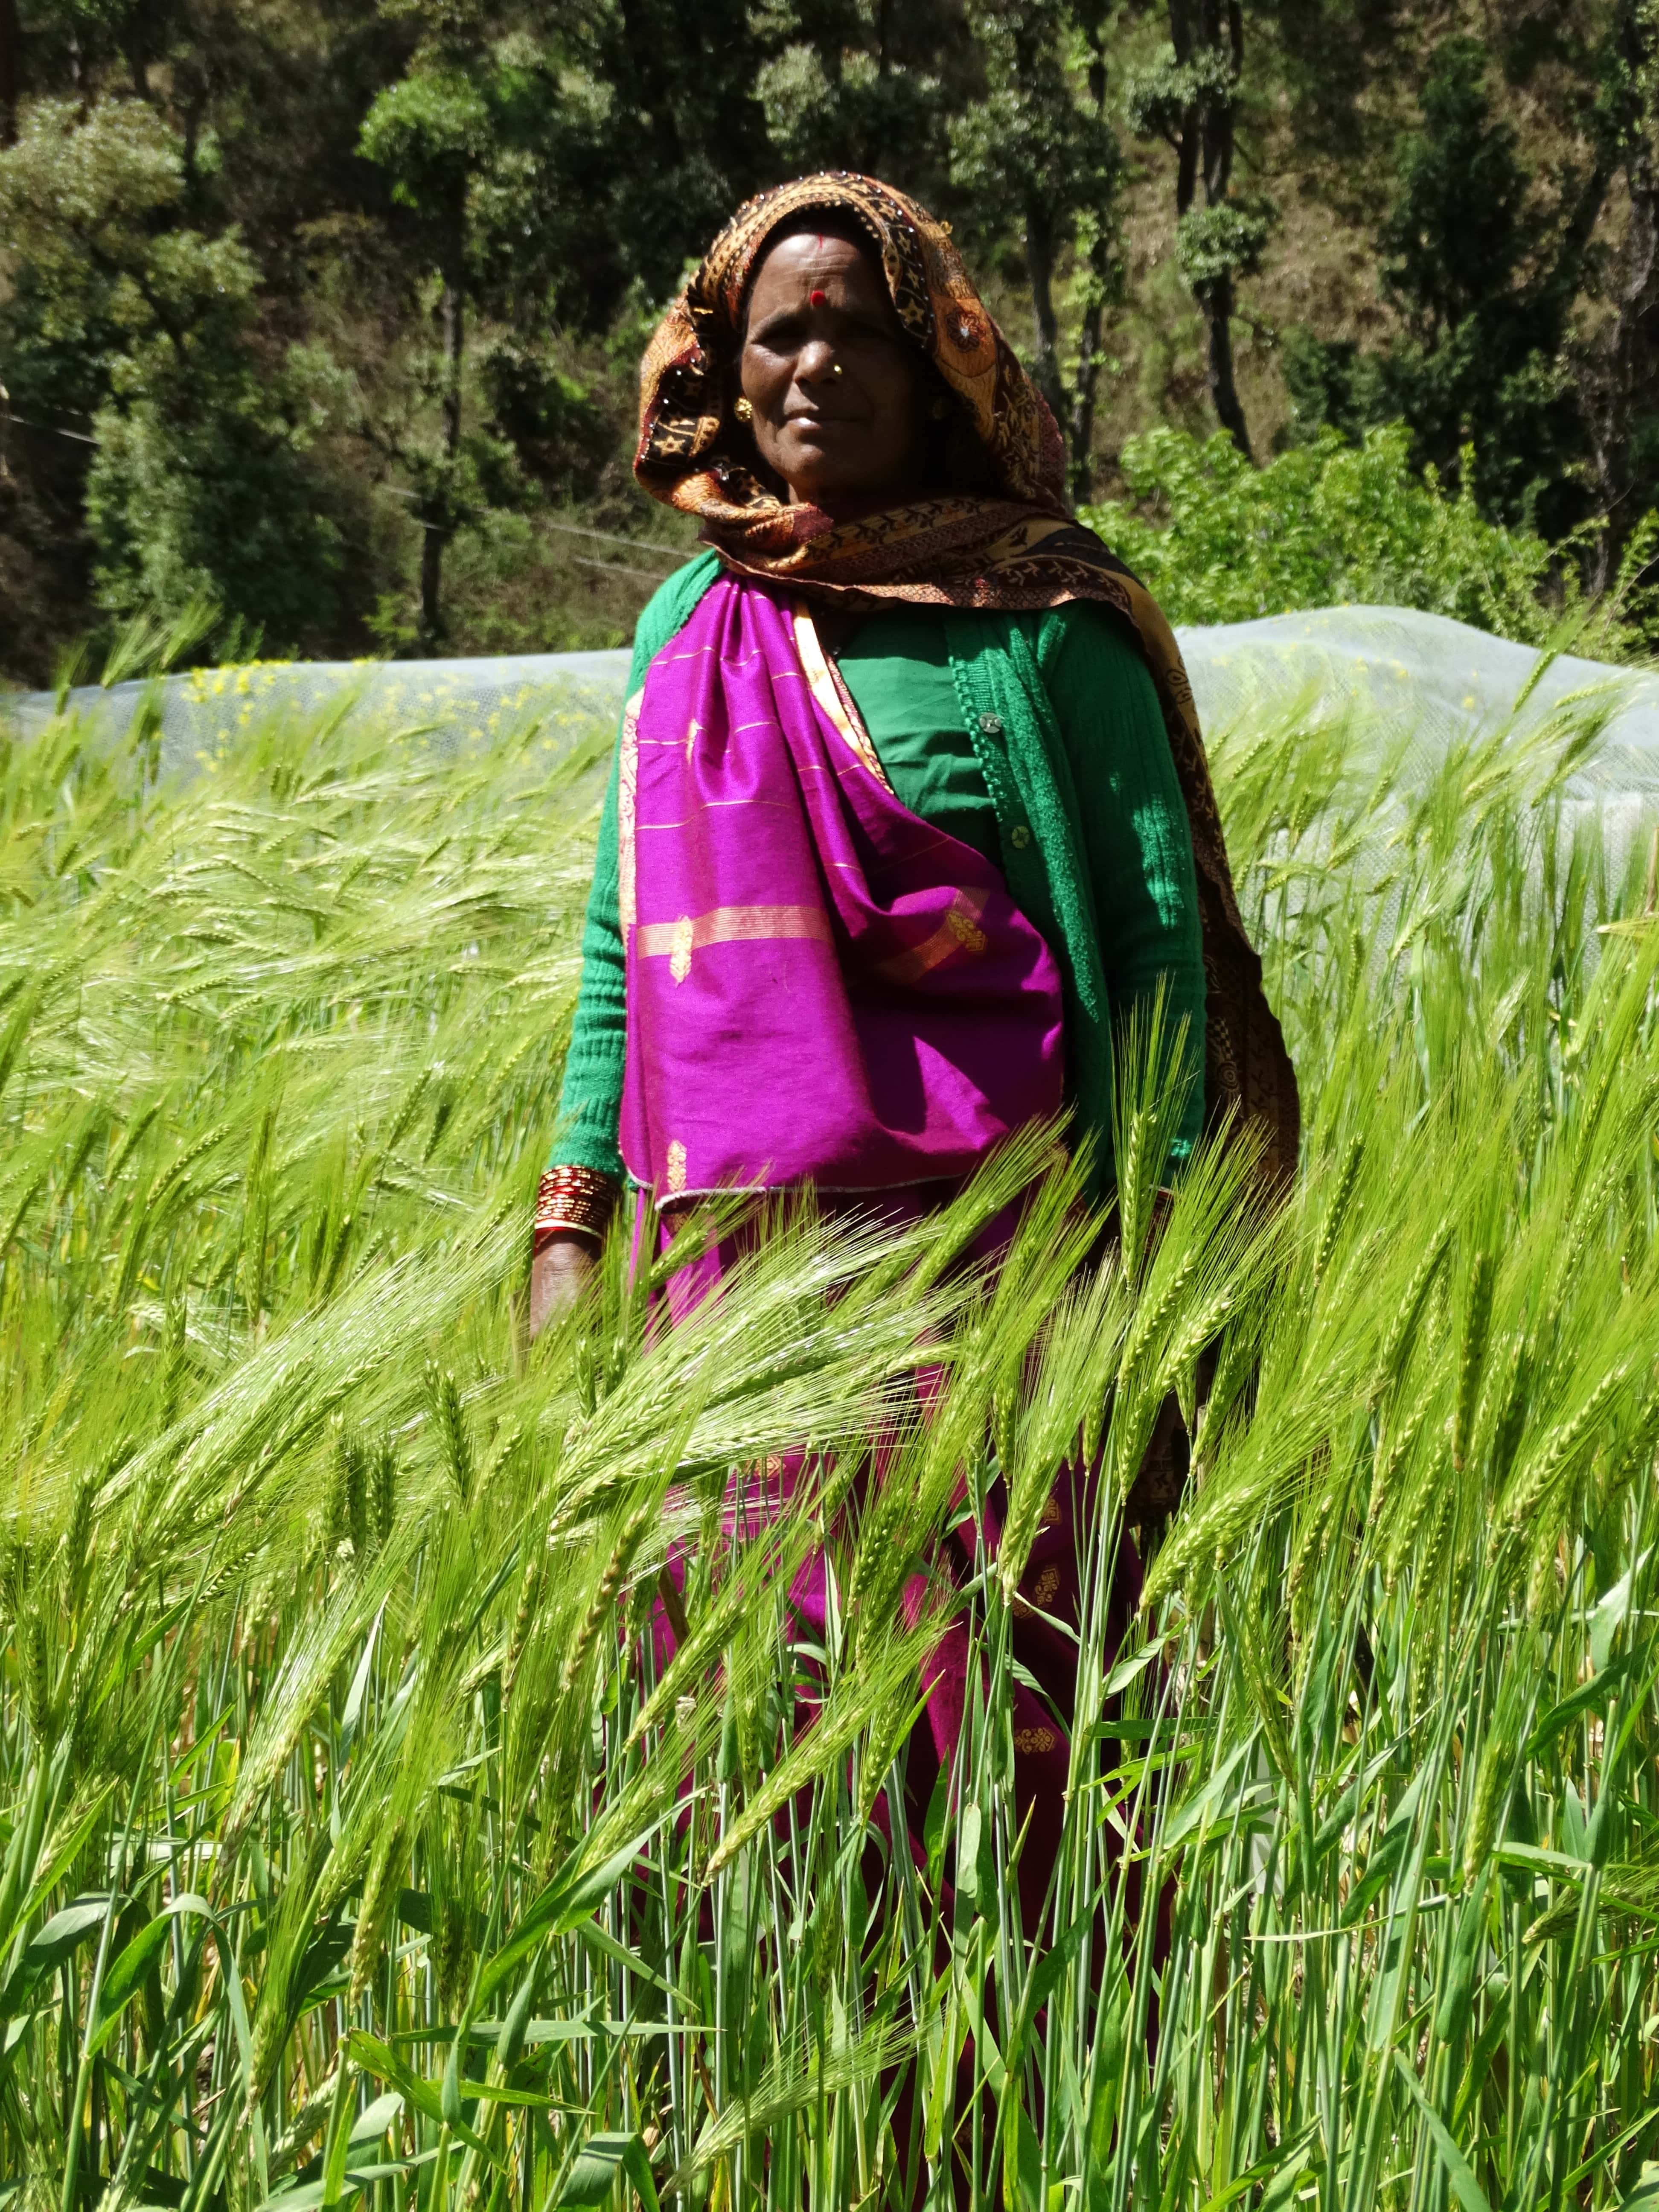 Women provide crucial support to agriculture in the region